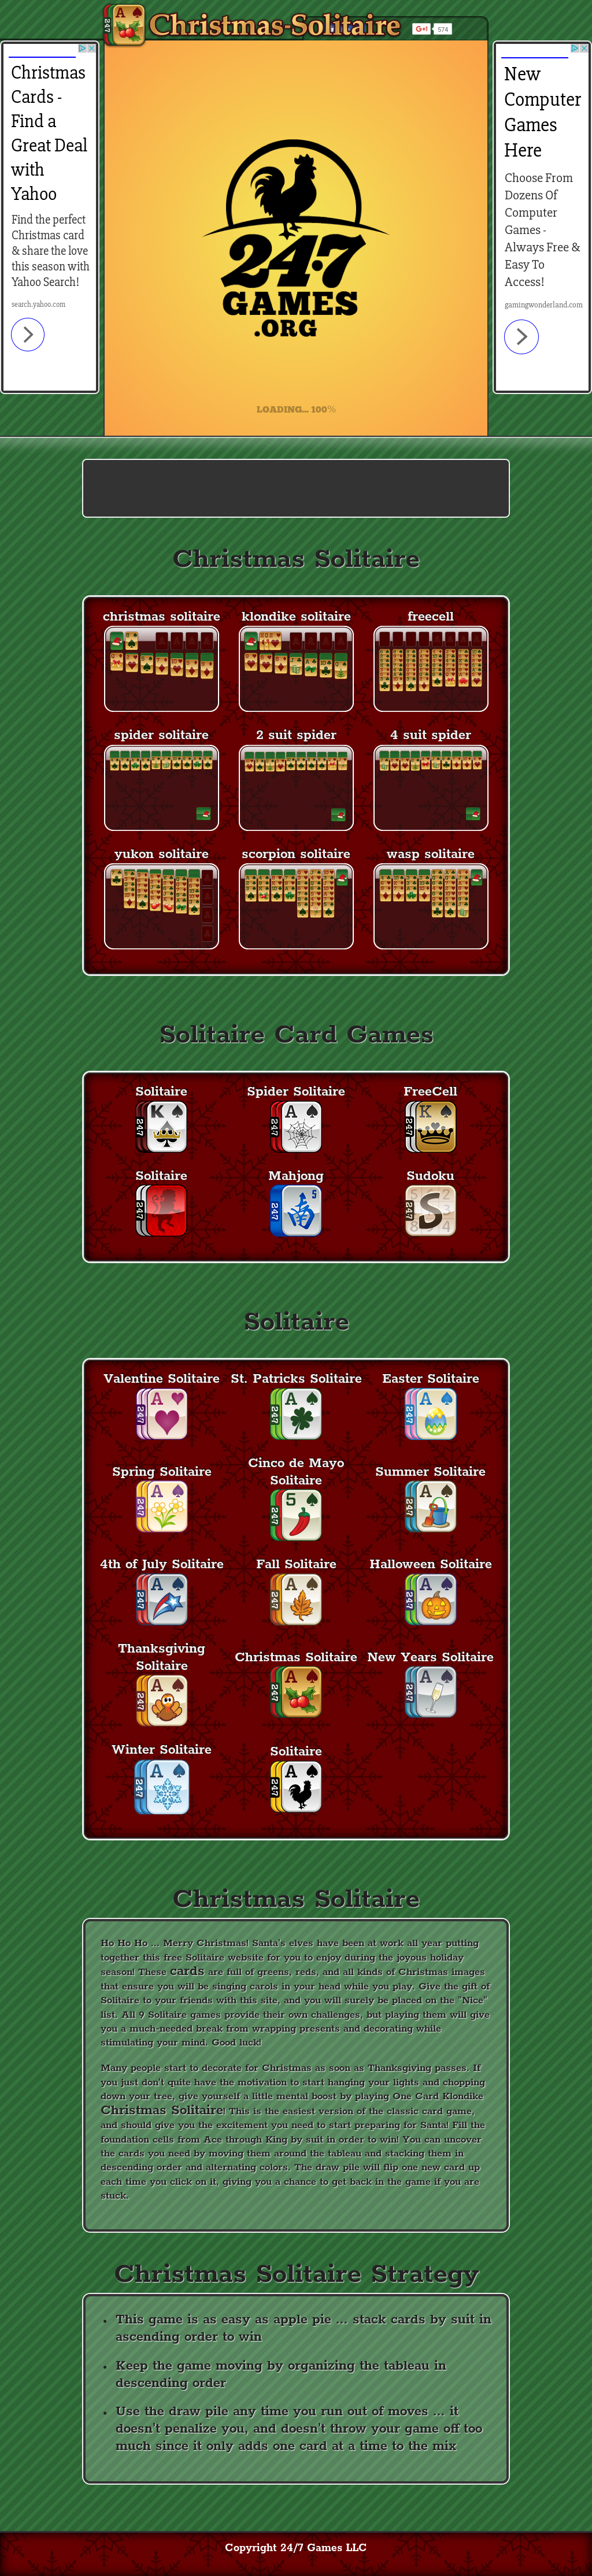 Christmas Solitaire Competitors, Revenue and Employees